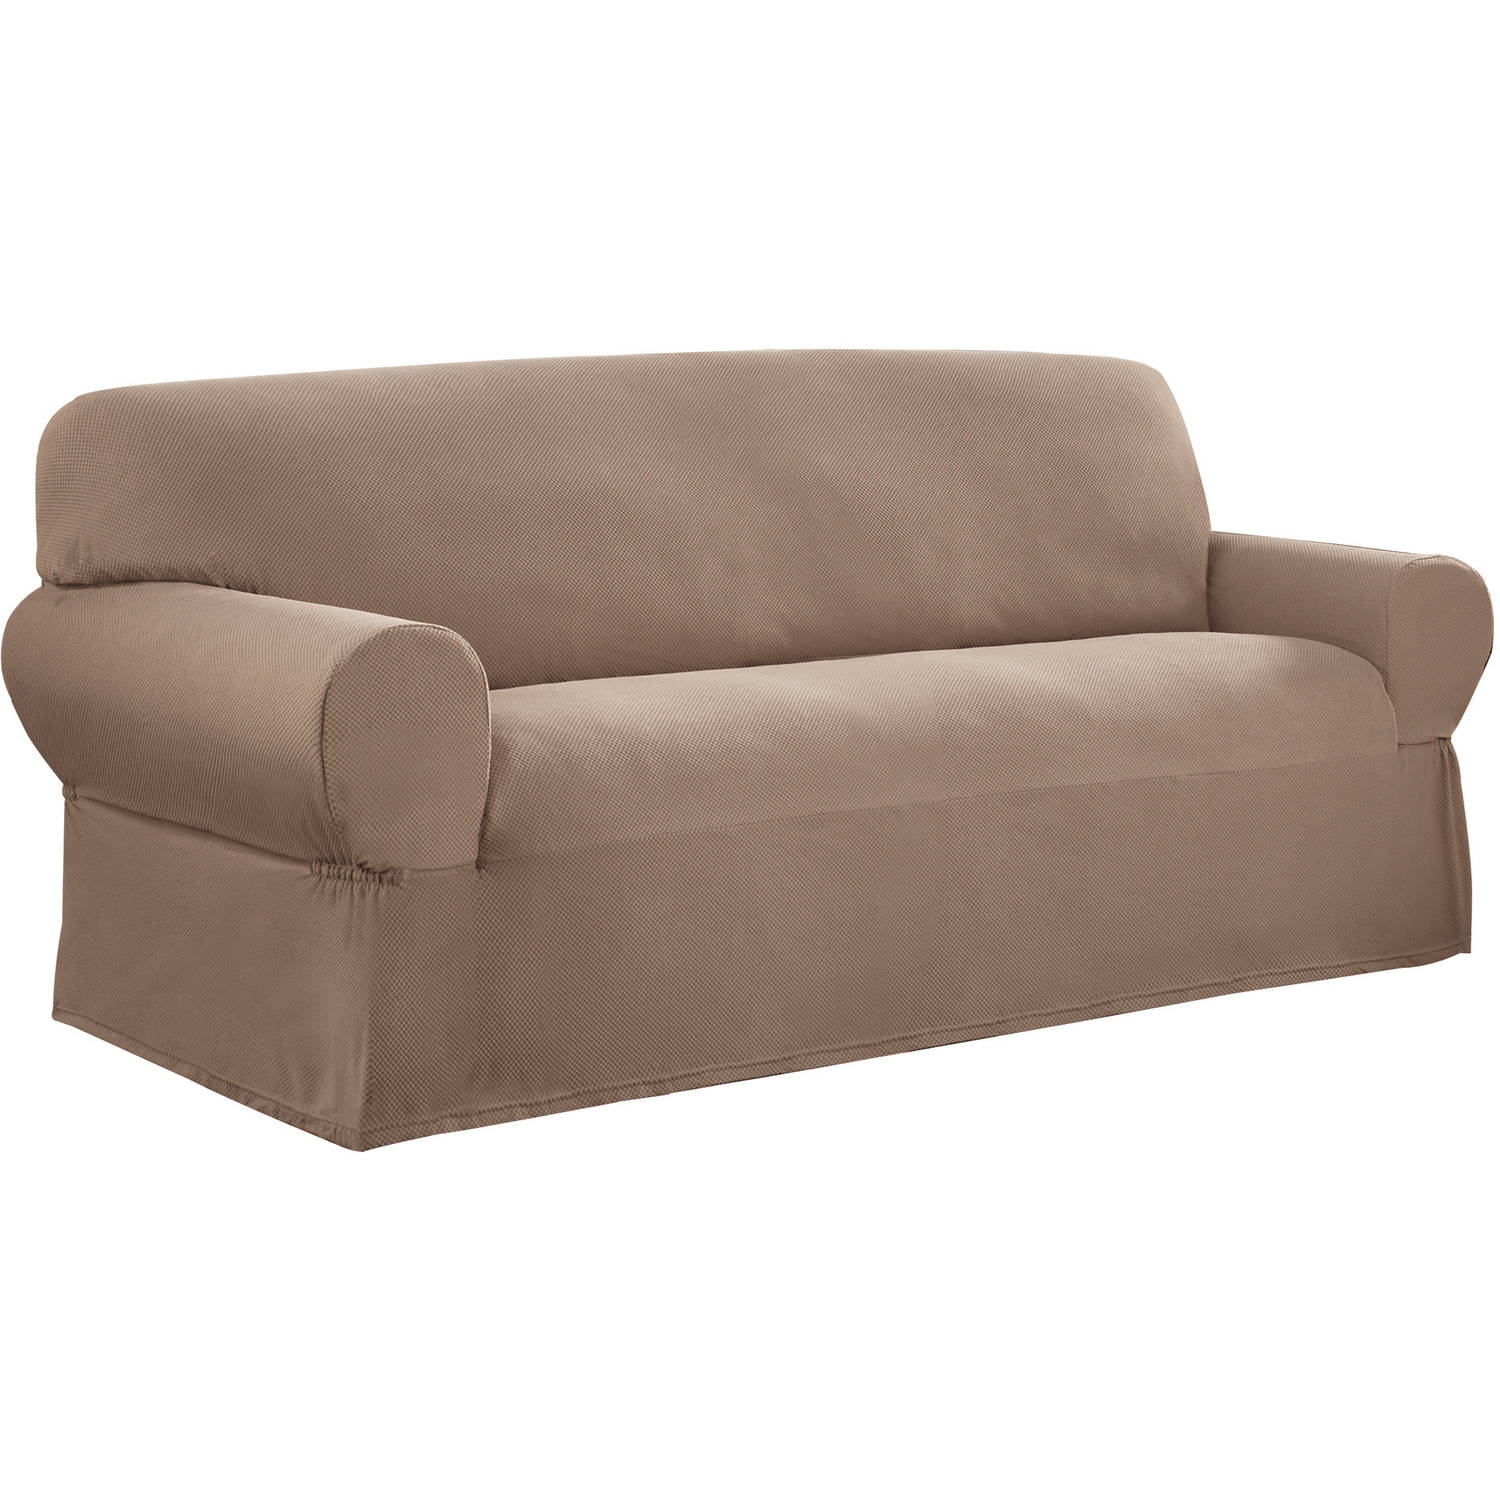 Stretch Sofa Slipcovers Cheap | My Couch Is Pretty